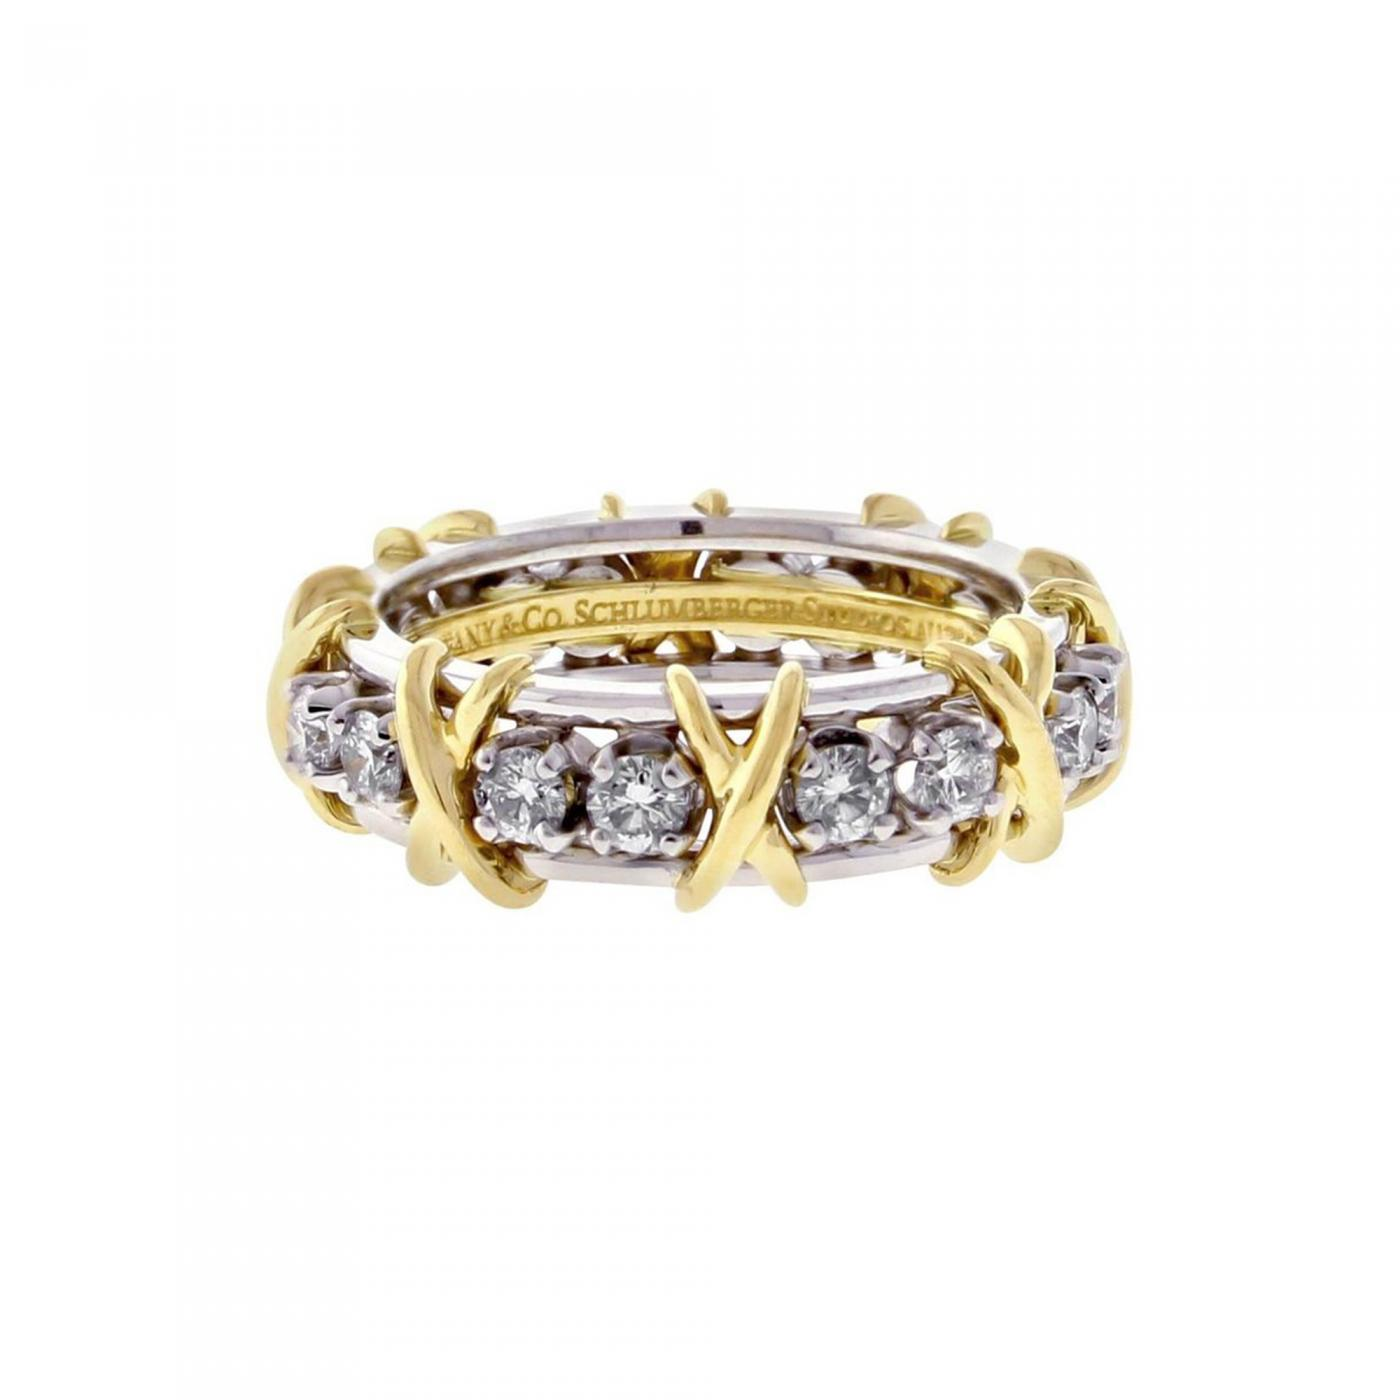 eeb6734c8 Jean Michel Schlumberger Tiffany Co Schlumberger 16 Stone Diamond Gold X  Ring. Tap to expand